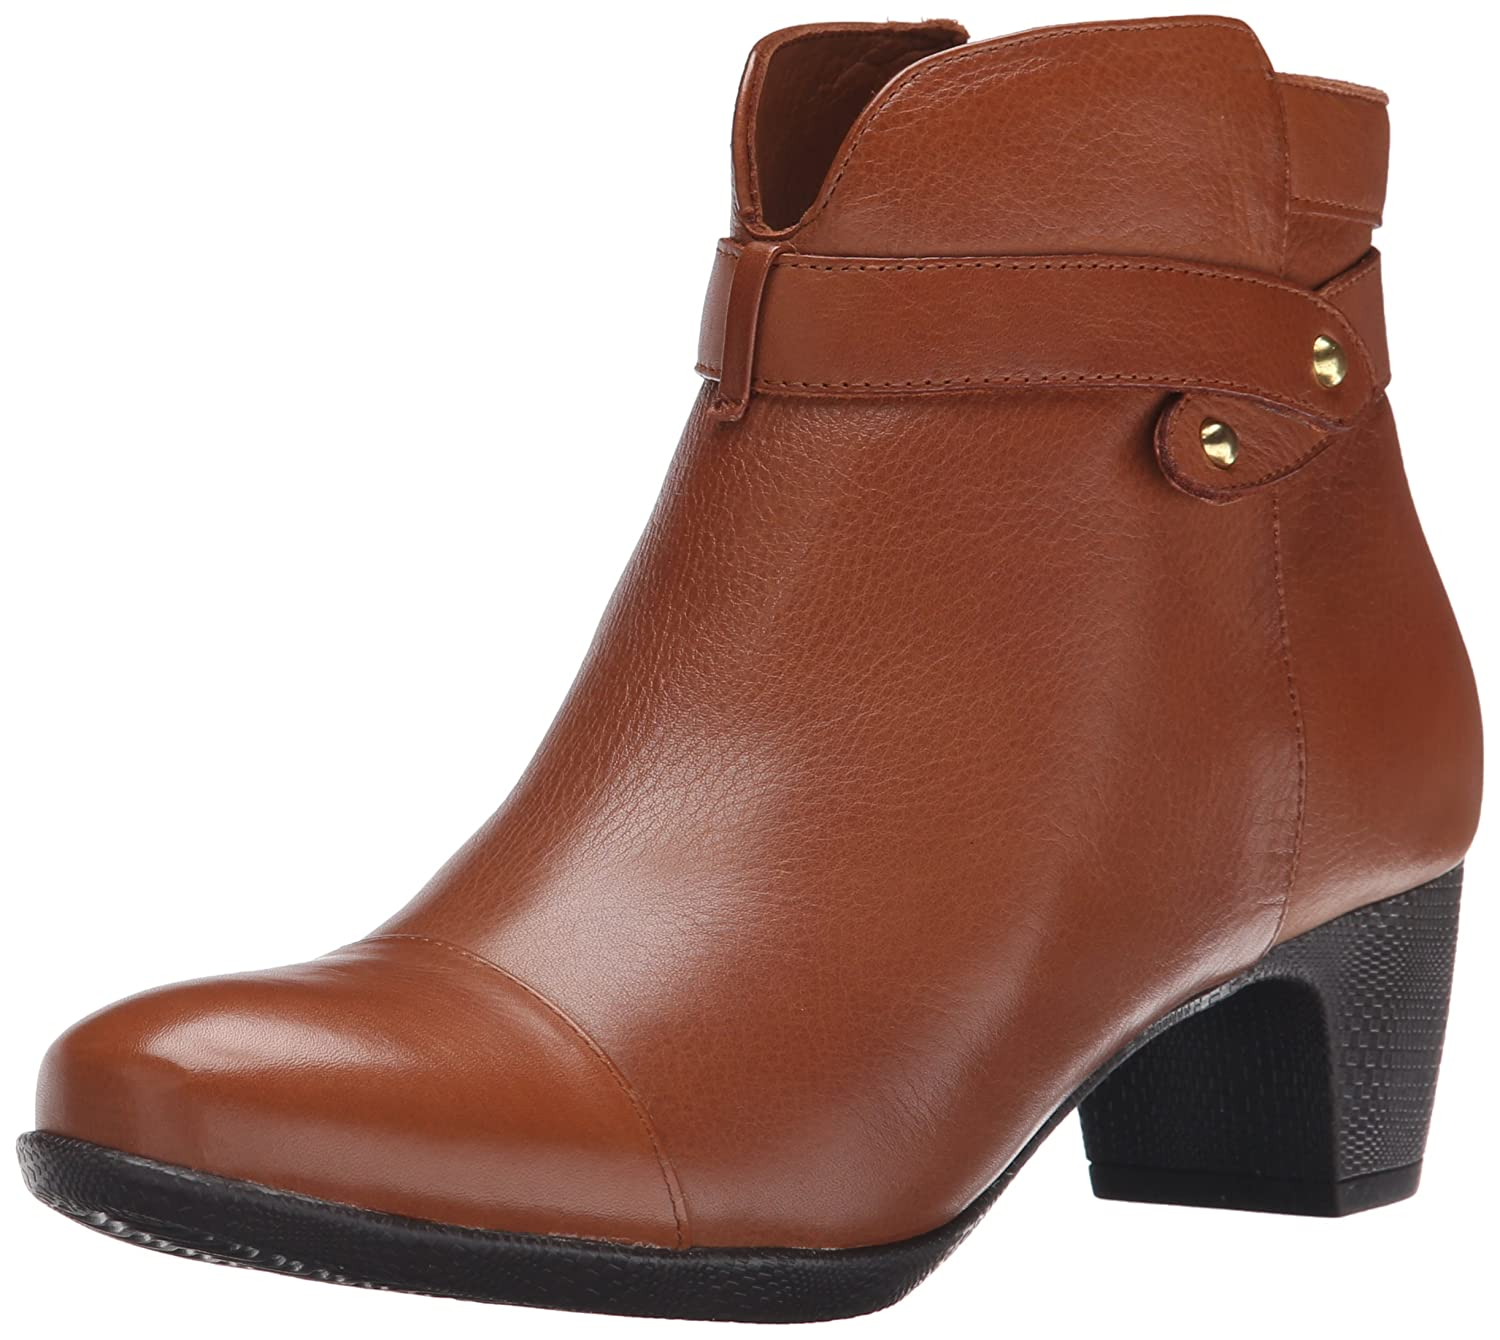 SoftWalk Women's Ivanhoe Harness Boot B00HQLNNFK 5 B(M) US|Cognac